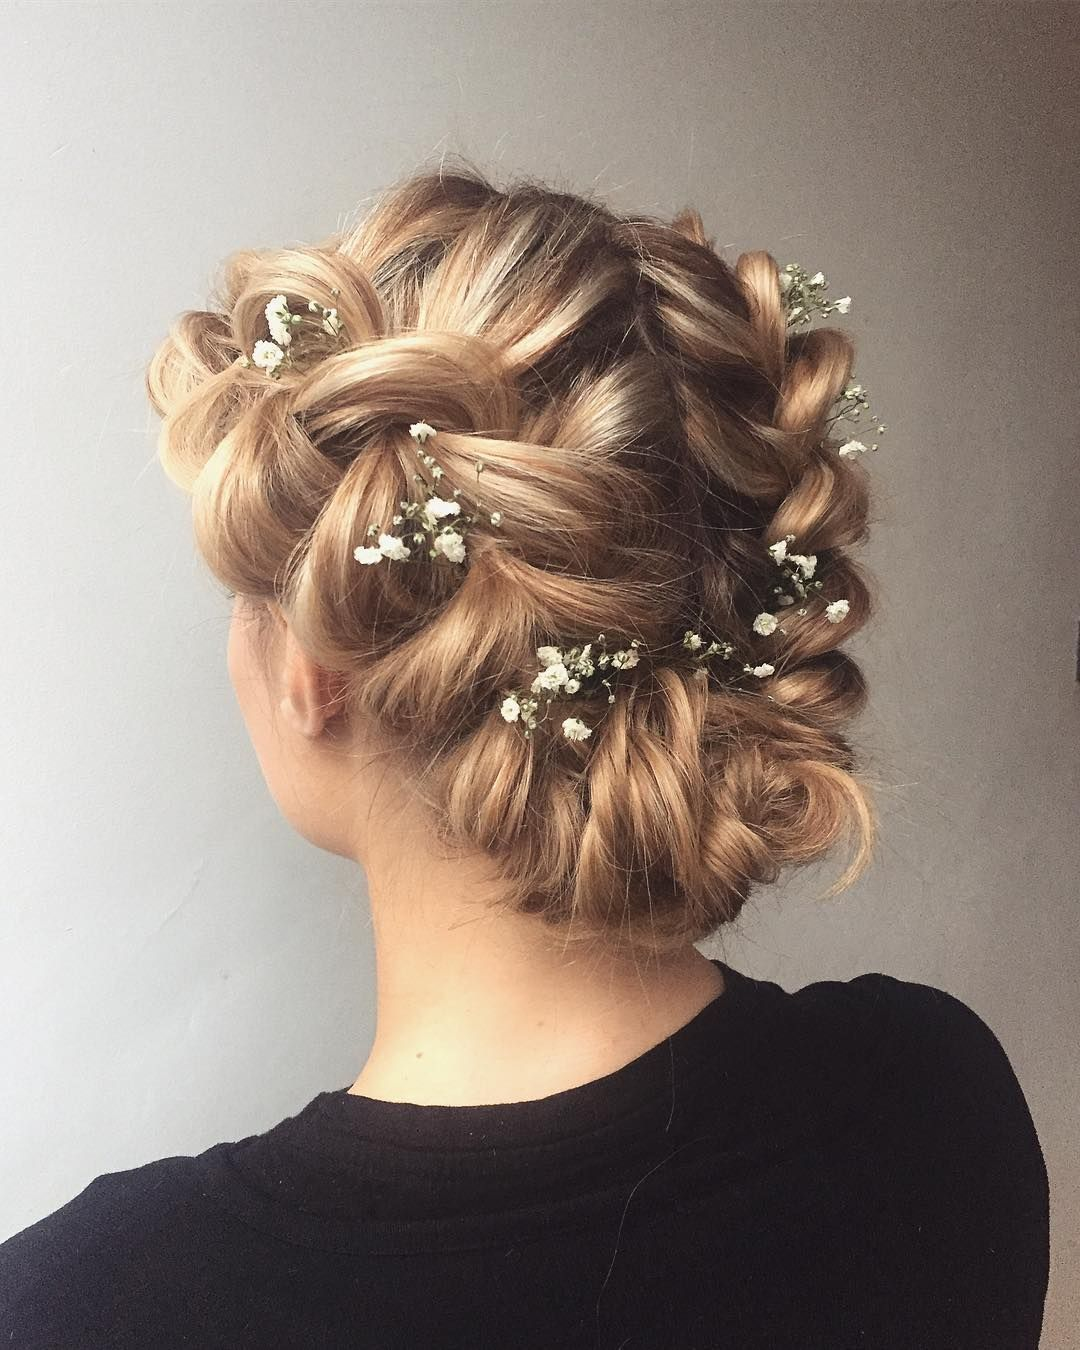 Bridal Crown Braid Hairstyle Textured Updo Updo Wedding Hairstyles Updo Hairstyles Messy Upd Braided Hairstyles Updo Dark Hair With Highlights Hot Hair Styles